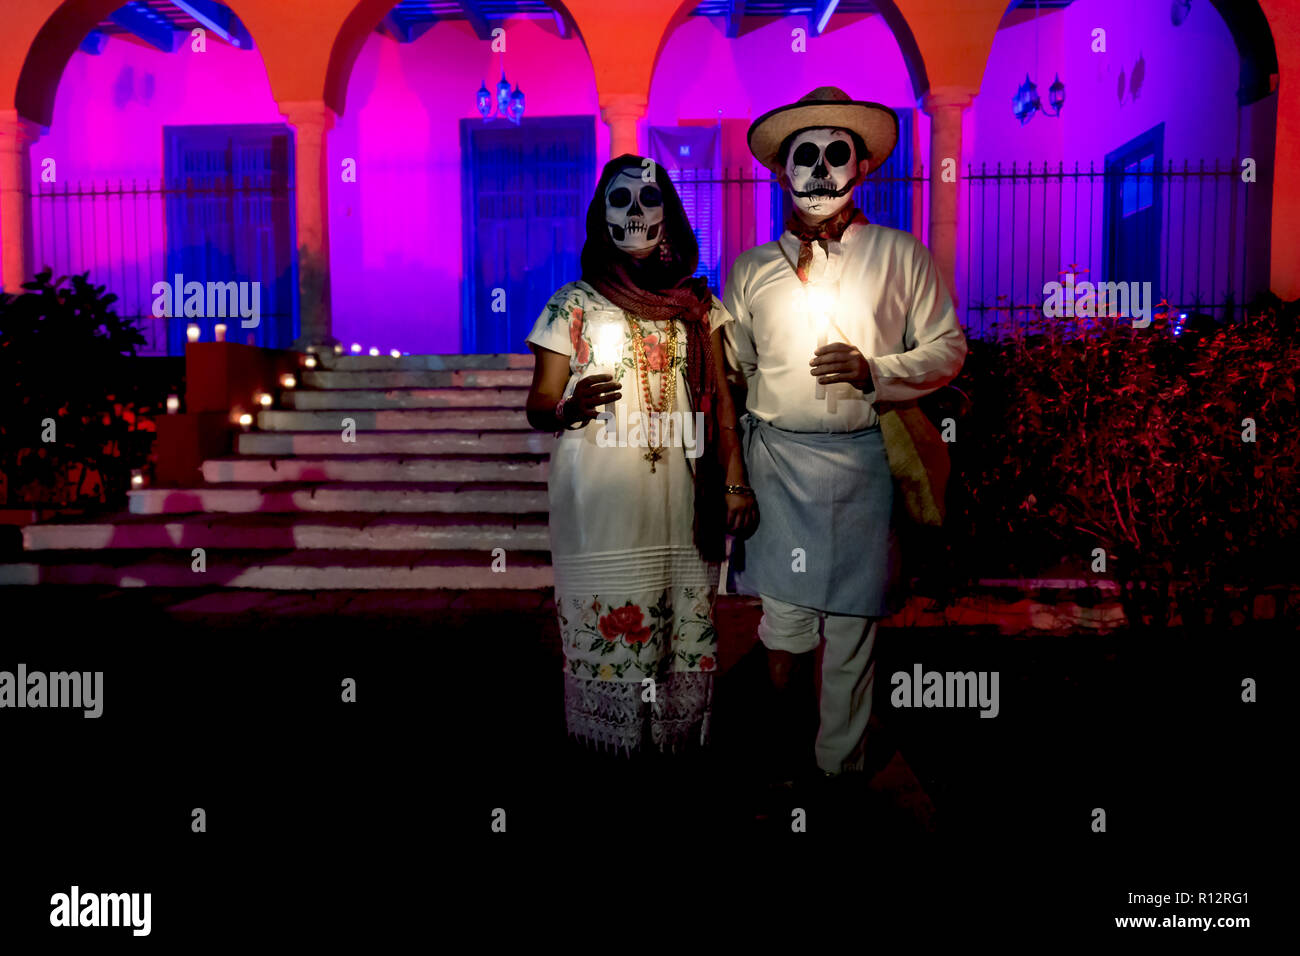 Merida, Cementerio General, Mexico - 31 October 2018: Customed man and woman with with mexican traditional white clothes and skull make-up in front of - Stock Image